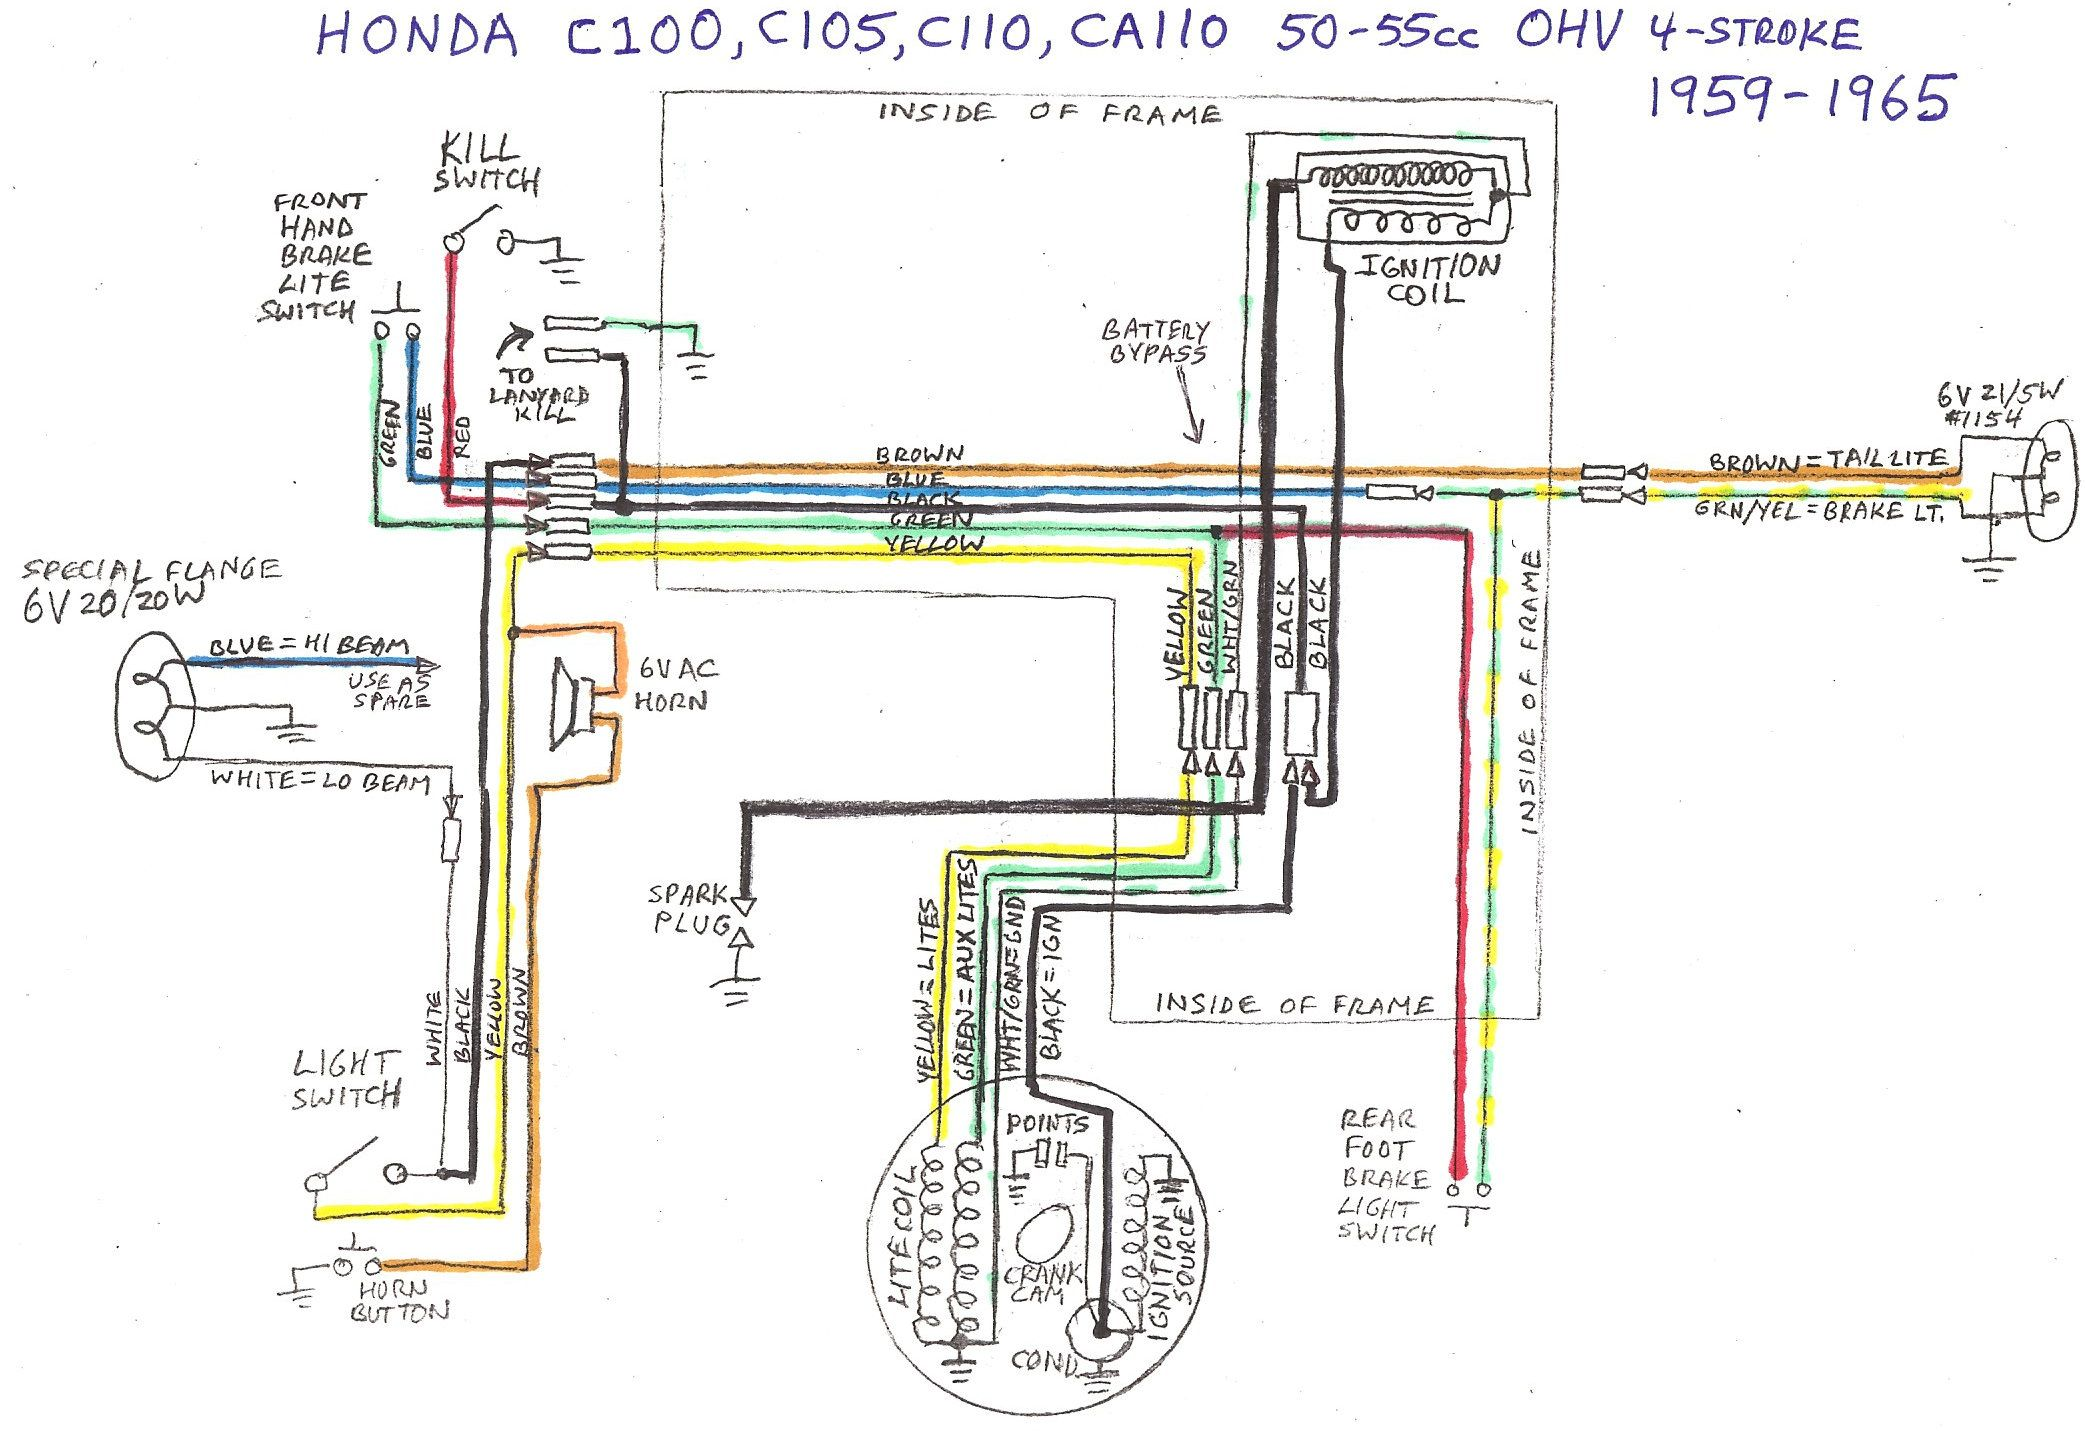 [SCHEMATICS_44OR]  D589 Honda 1967 Trail 90 Wiring Diagram | Wiring Library | Honda Ca77 Wiring Diagram |  | Wiring Library